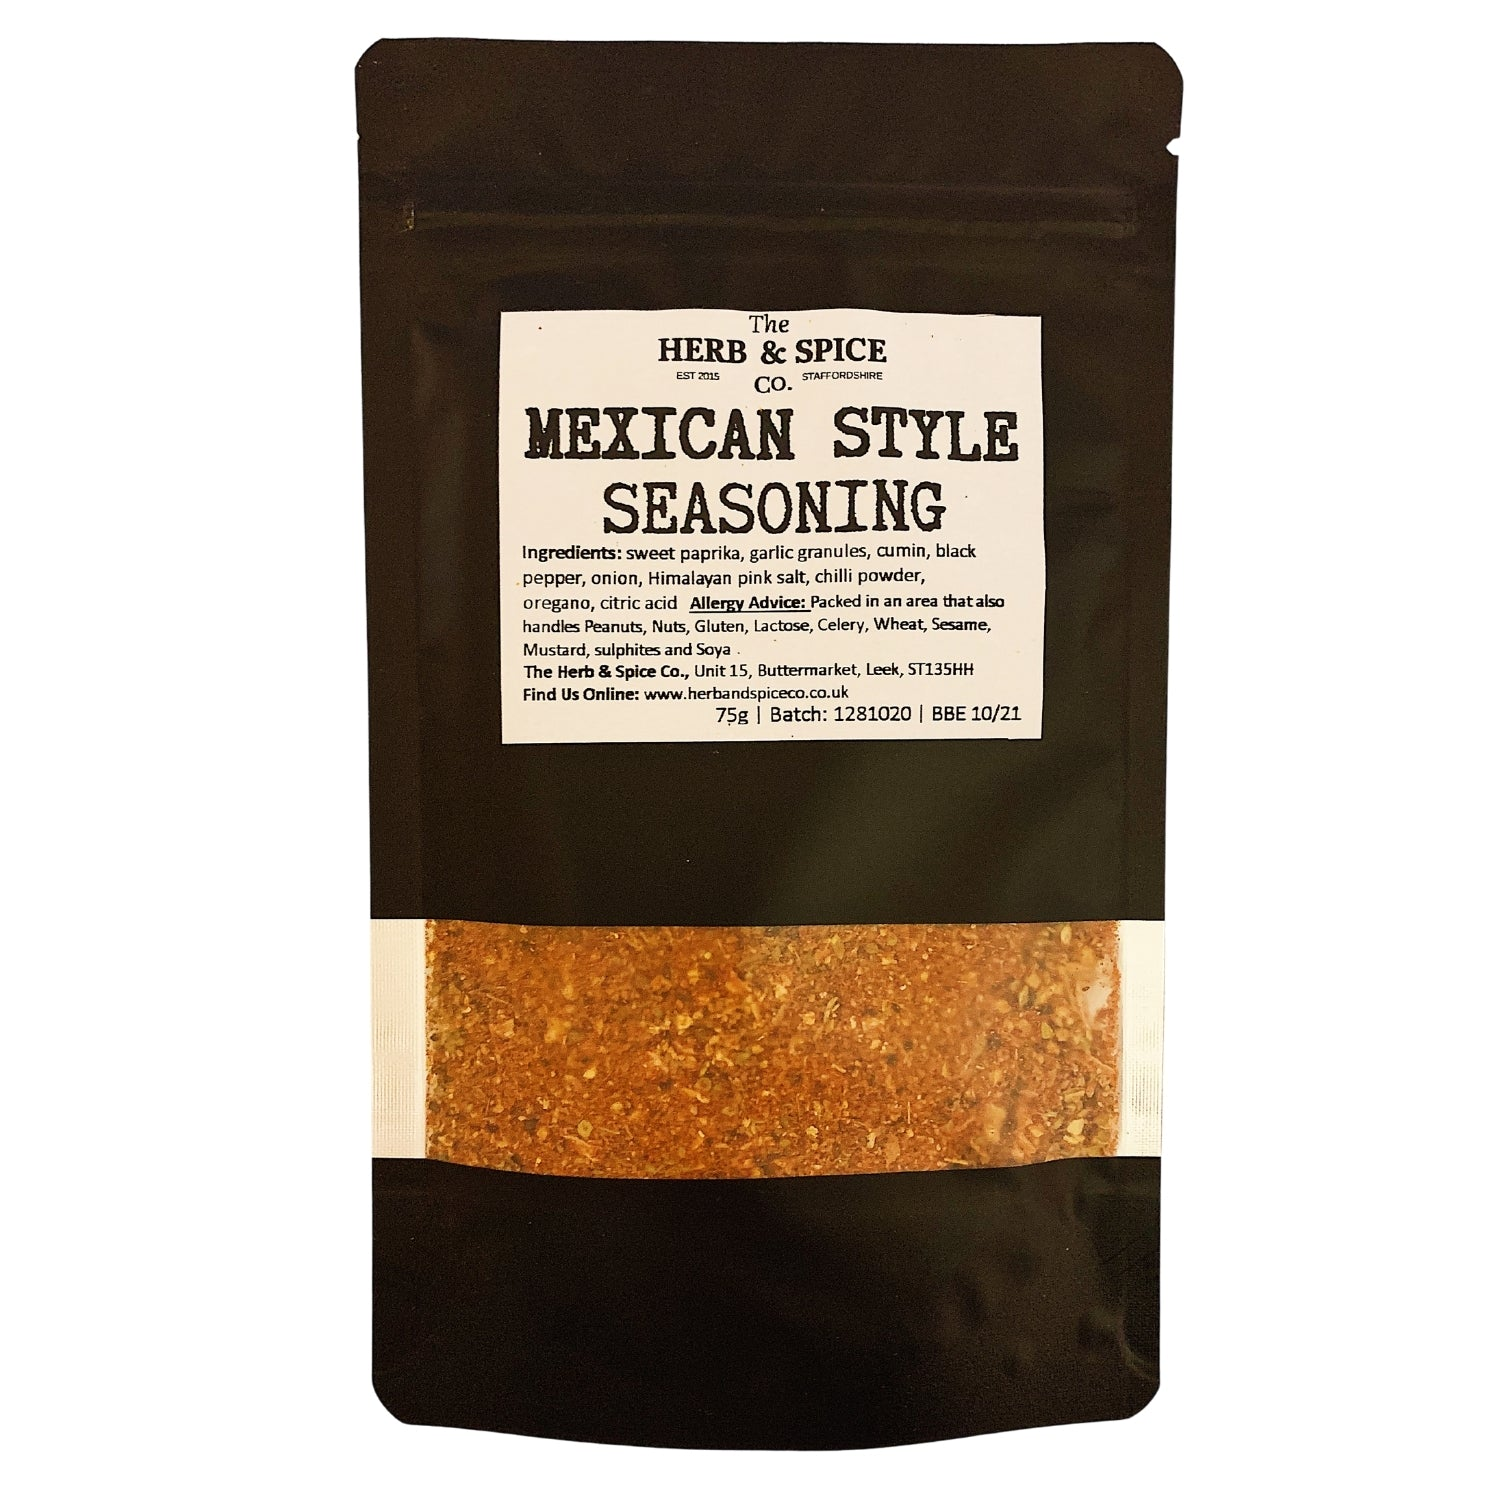 Mexican Style Fajita Spice Mix Seasoning The Herb & Spice Co.